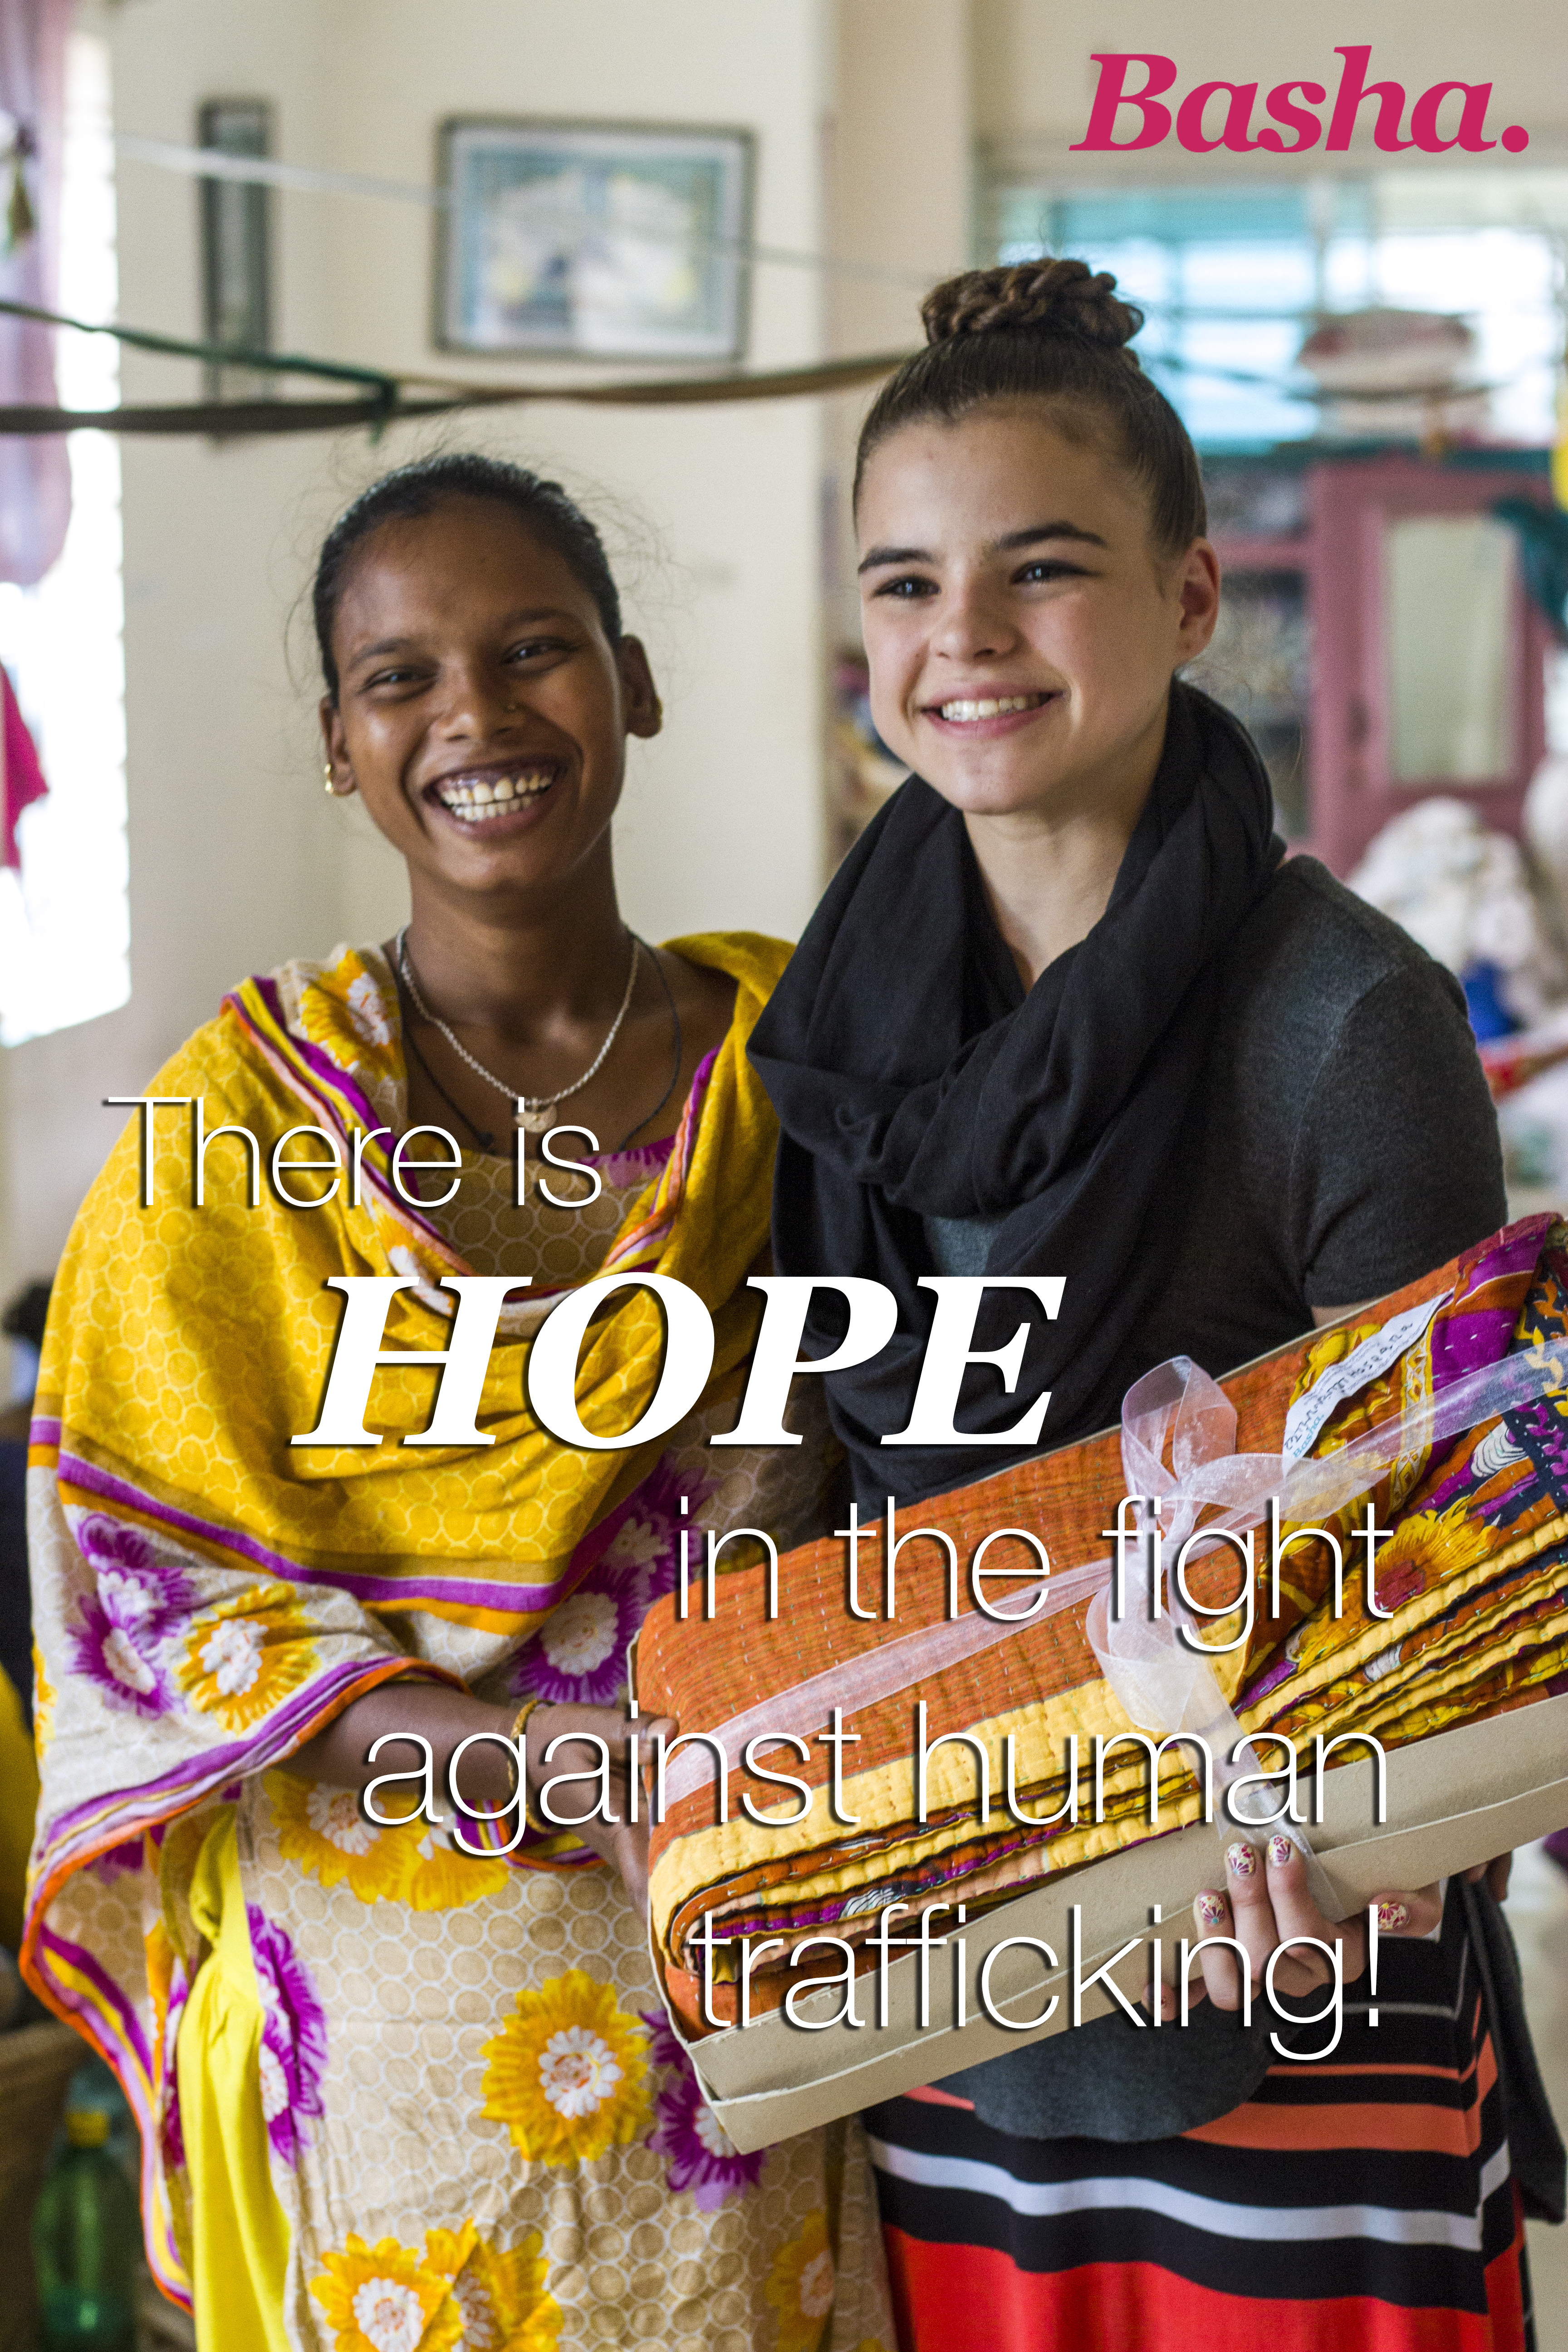 Photo of Basha artisan with customer and words There is hope in the fight against human trafficking!